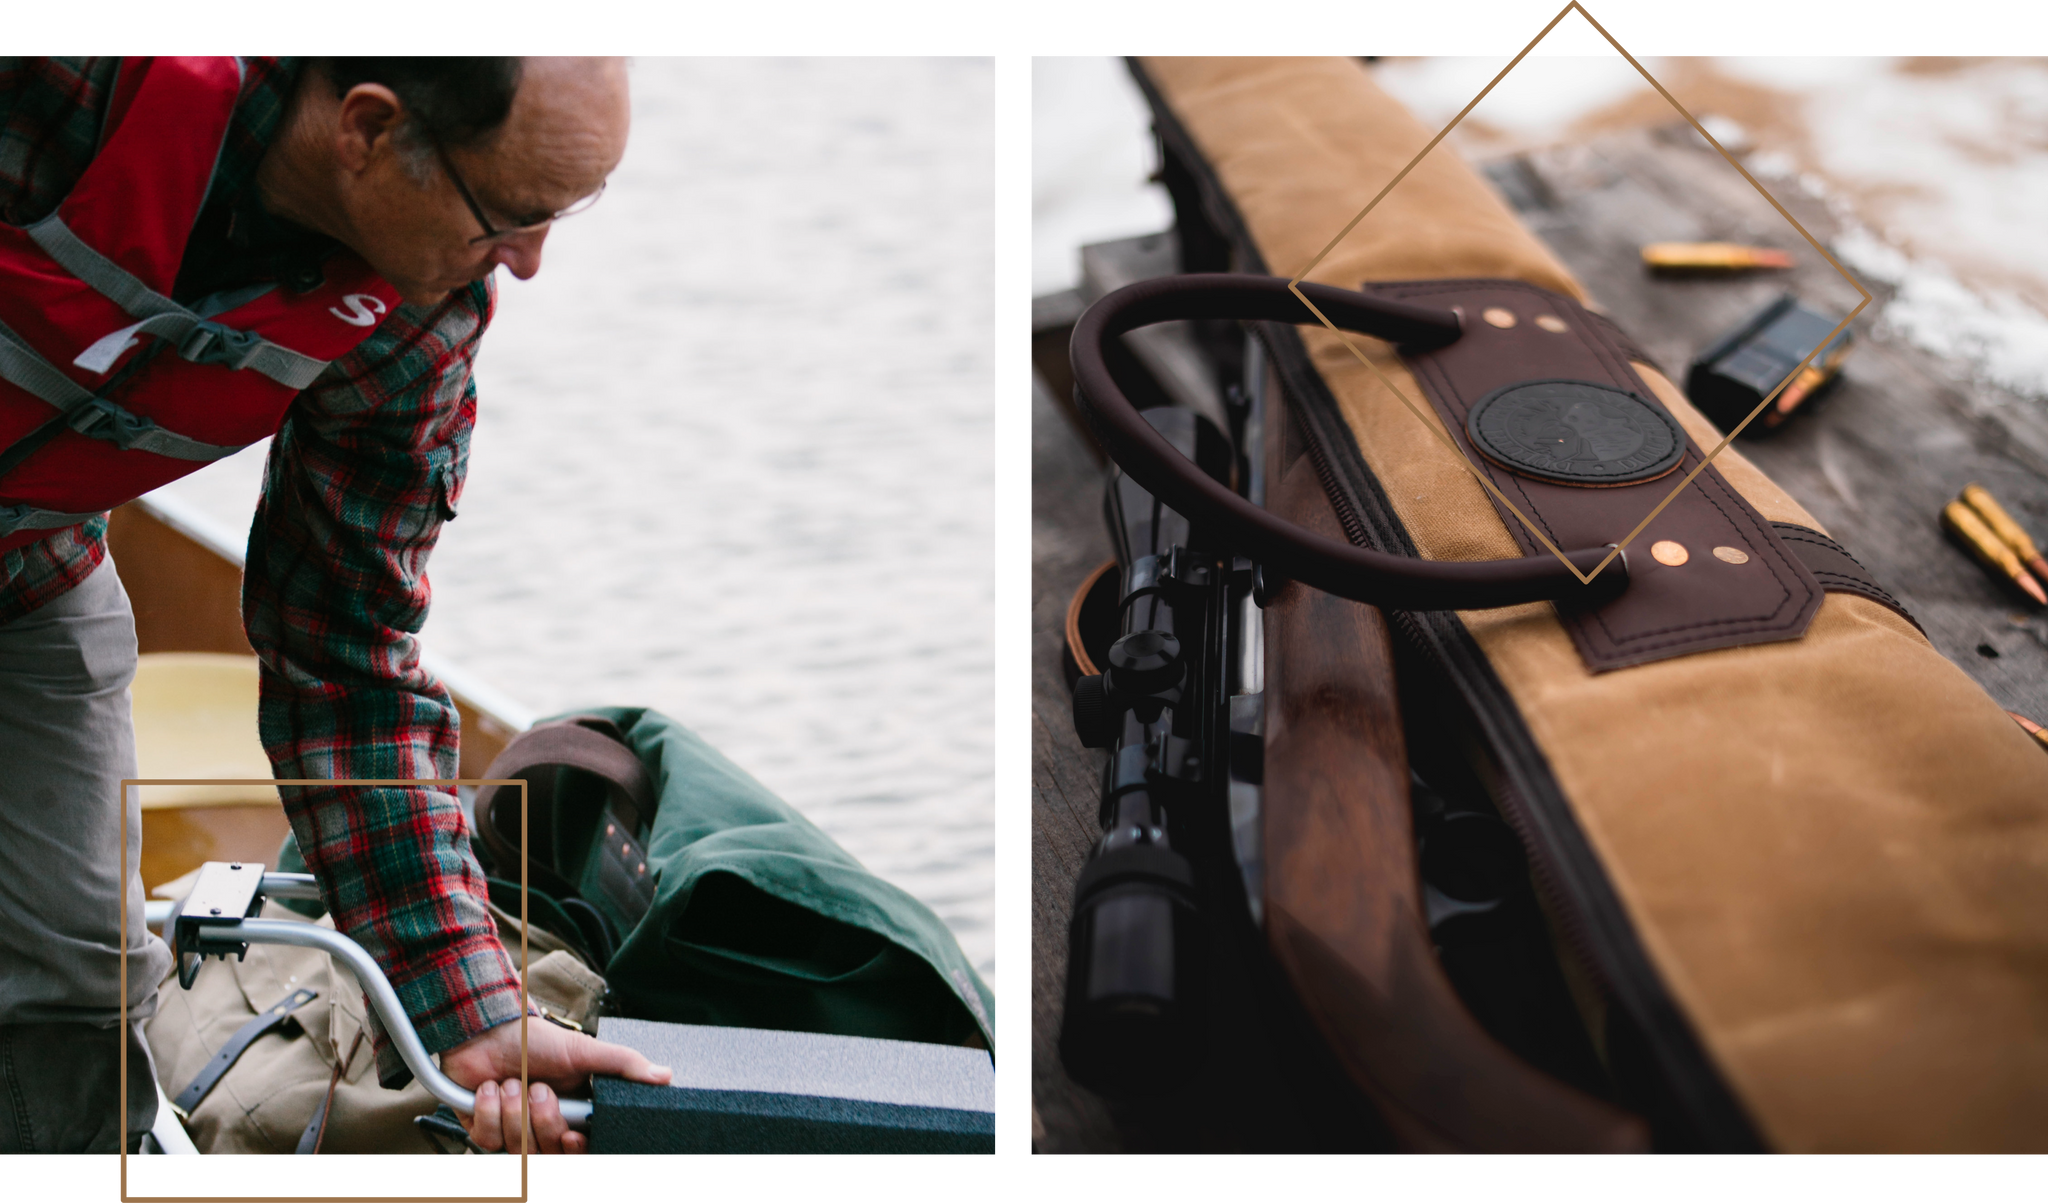 Images of Duluth Pack bags being utilized on the water